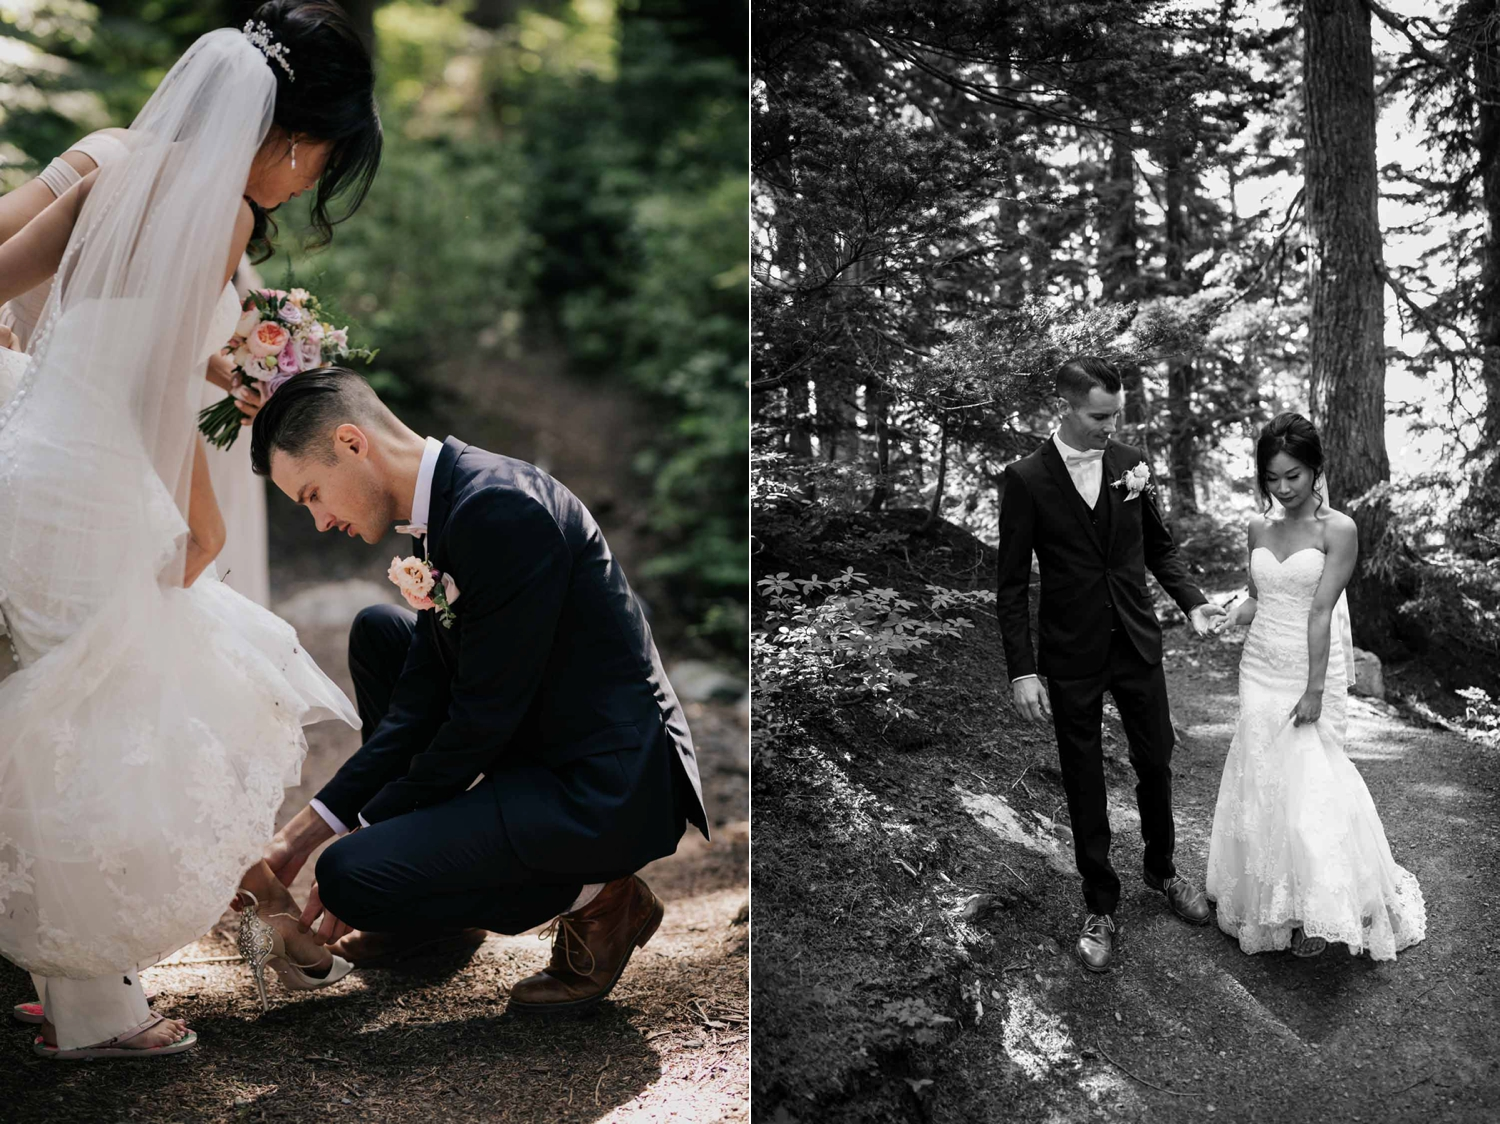 Groom Puts on Bride's Shoe Candid Moment